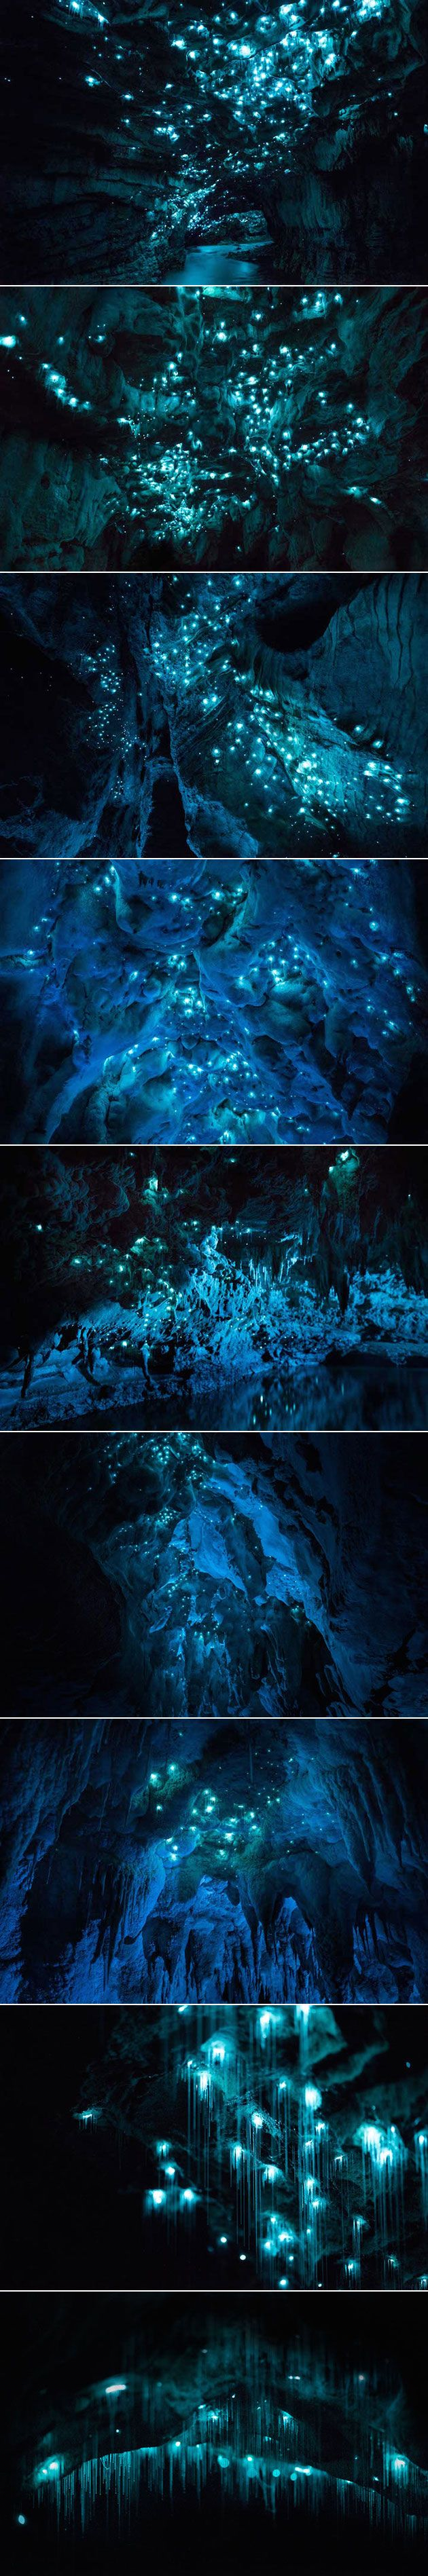 By venturing into the 30-million-year-old limestone caves on New Zealand's North Island, photographer Joseph Michael was able to capture magical images of the glowworms that call this place home. Against the natural backdrop that the cave provides, it looks as though there are hundreds of miniature, blue-tinted stars, but this is actually the work of glowworms known as Arachnocampa luminosa.